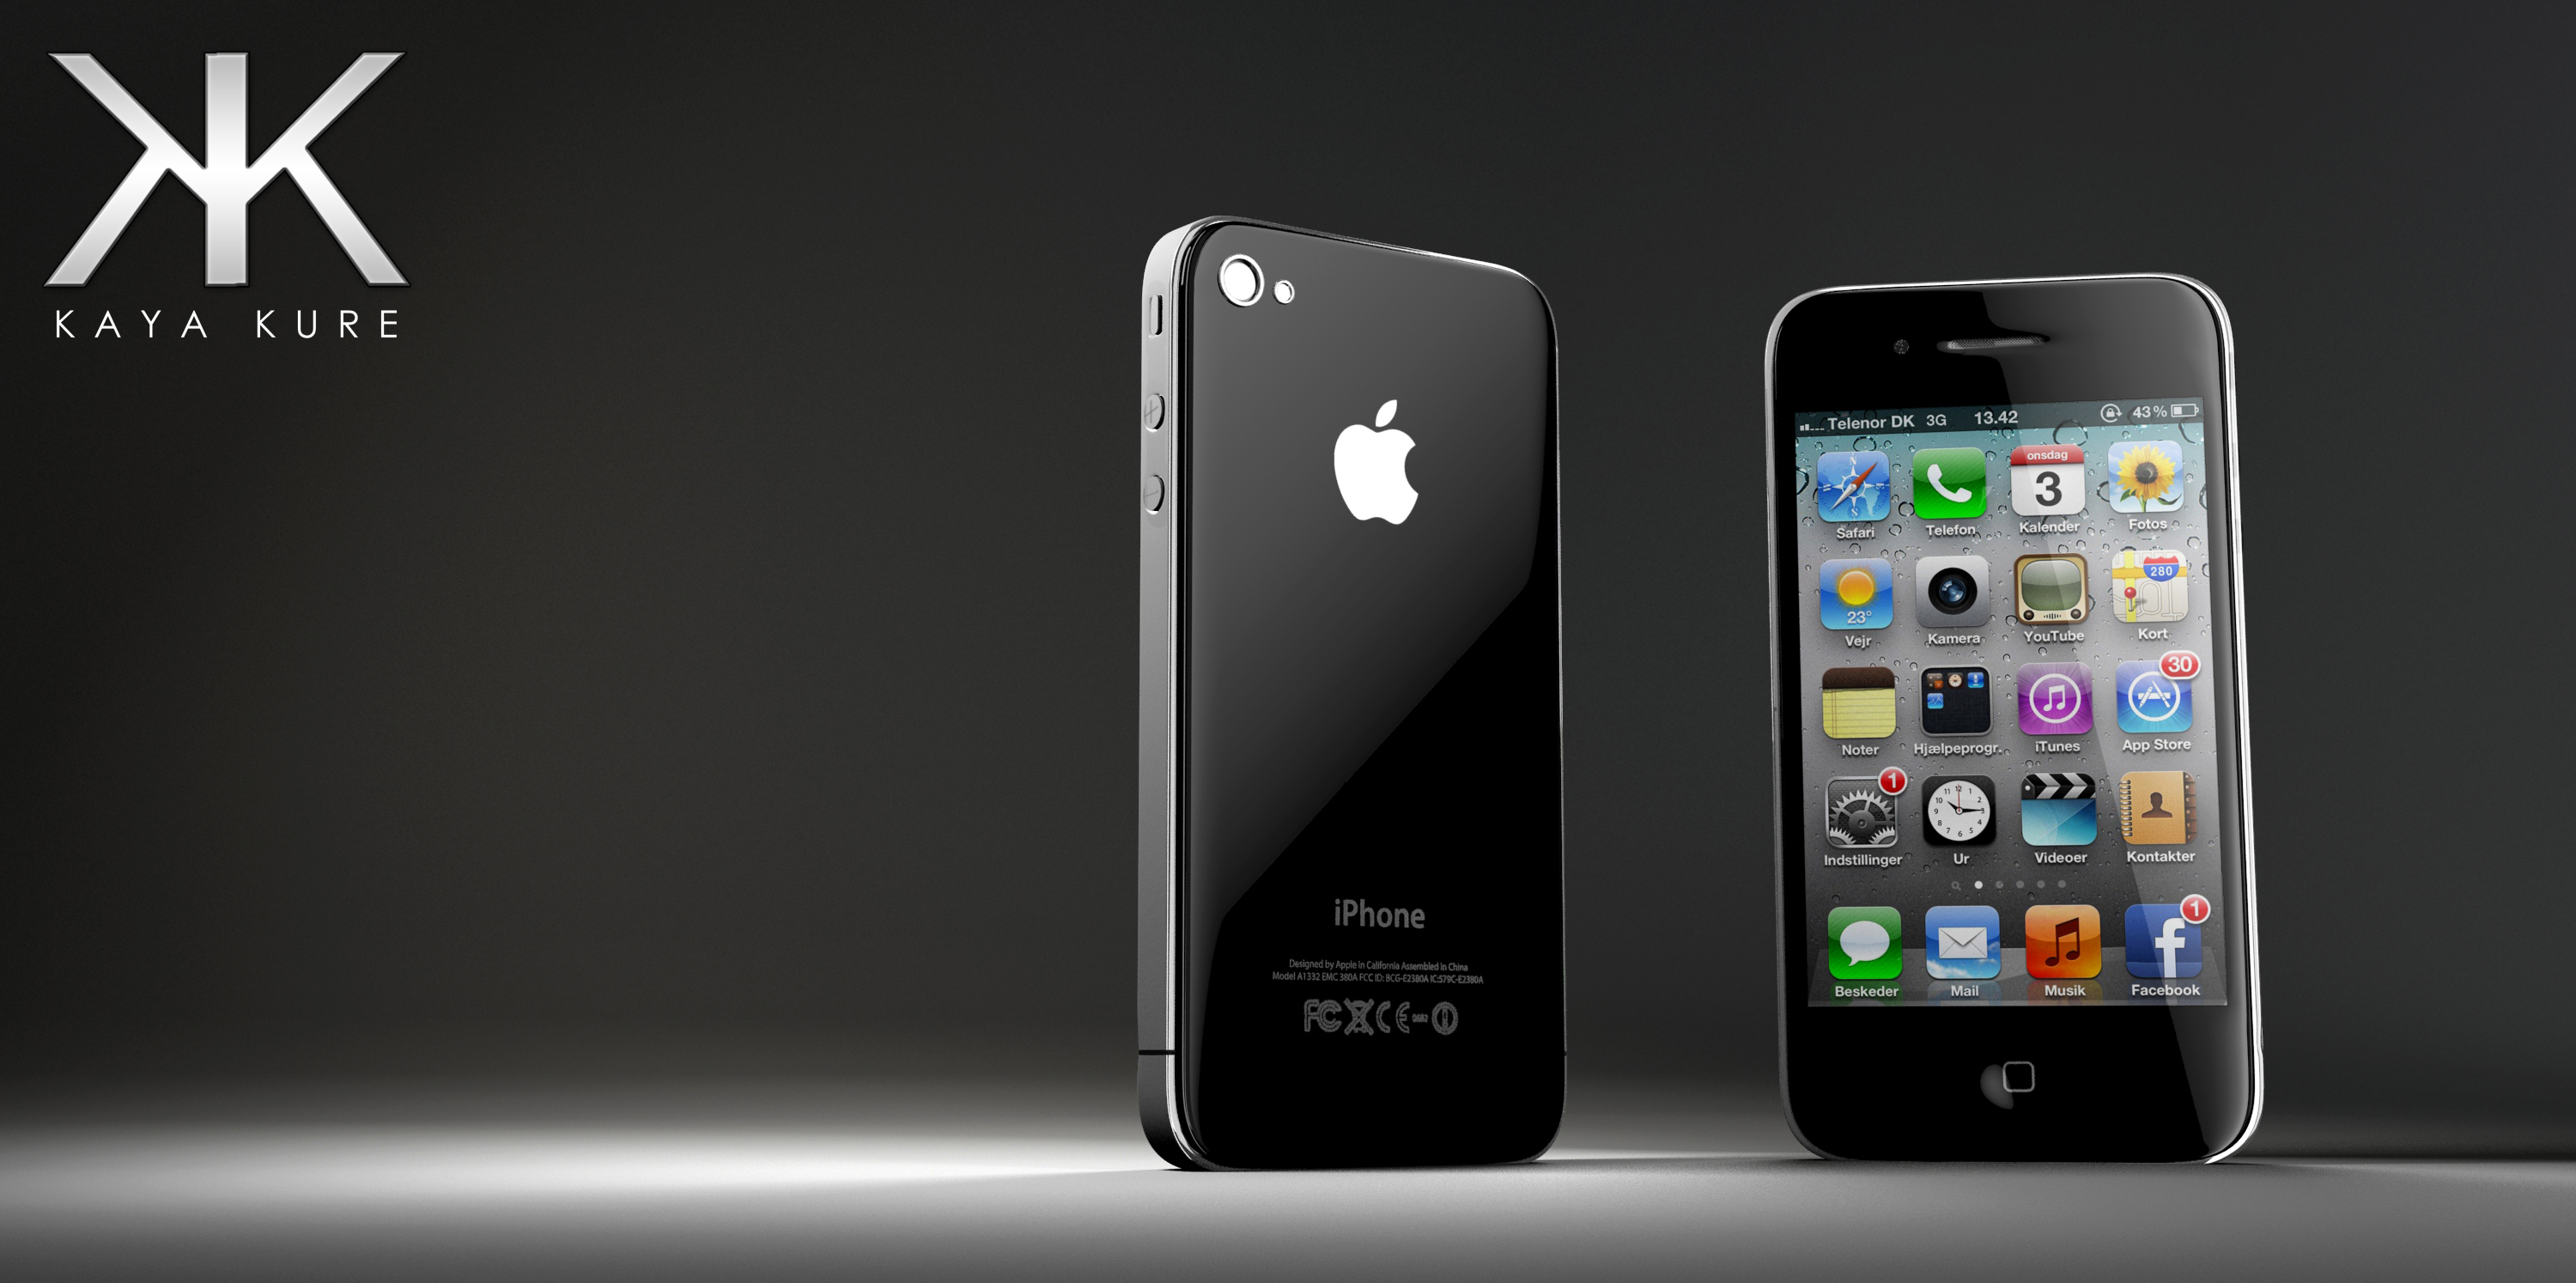 iPhone 4 in 3D